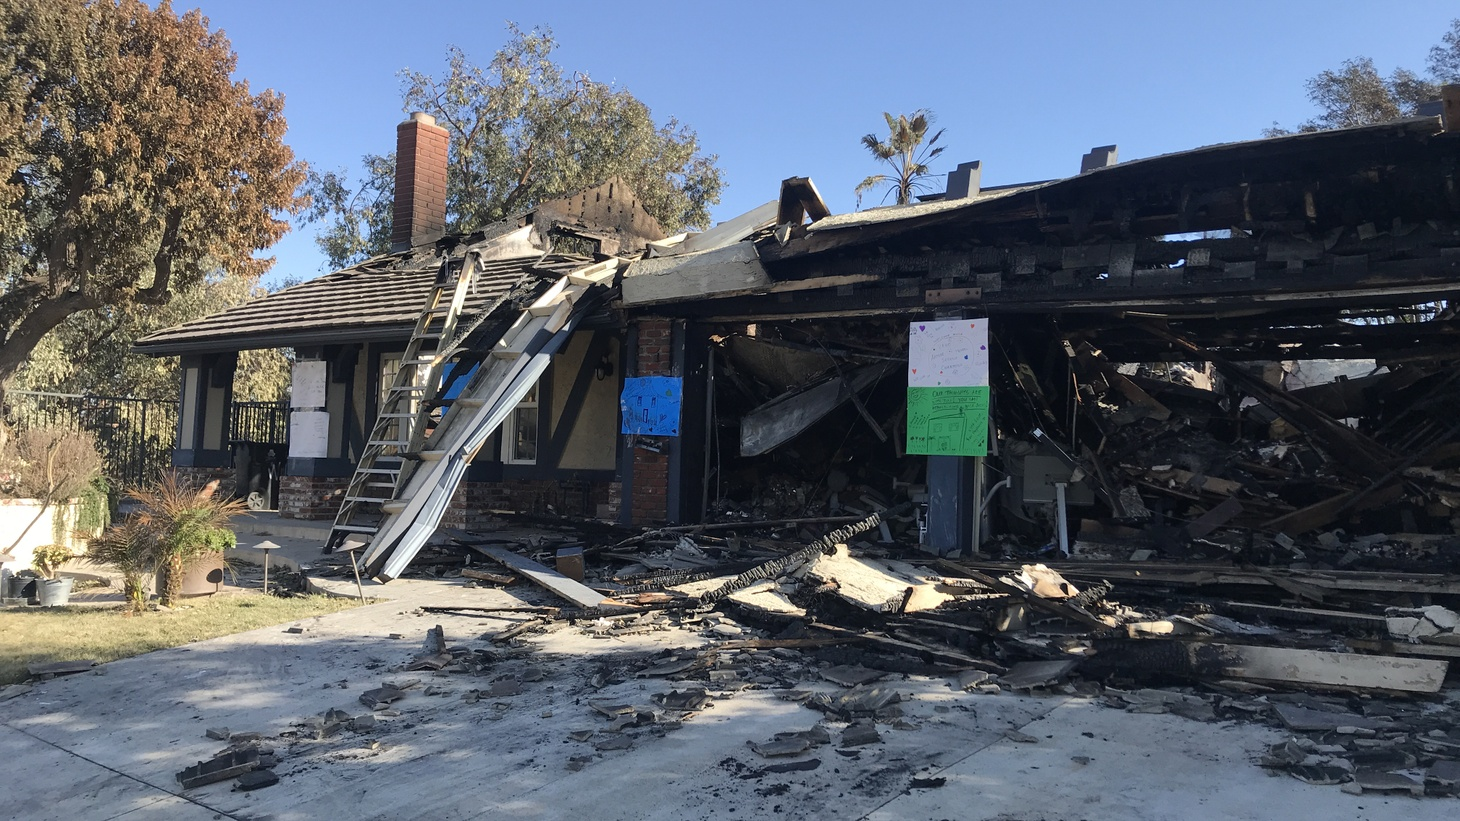 The Saddleridge fire destroyed dozens of buildings, including some homes, like this one on Hampton Court in Porter Ranch.